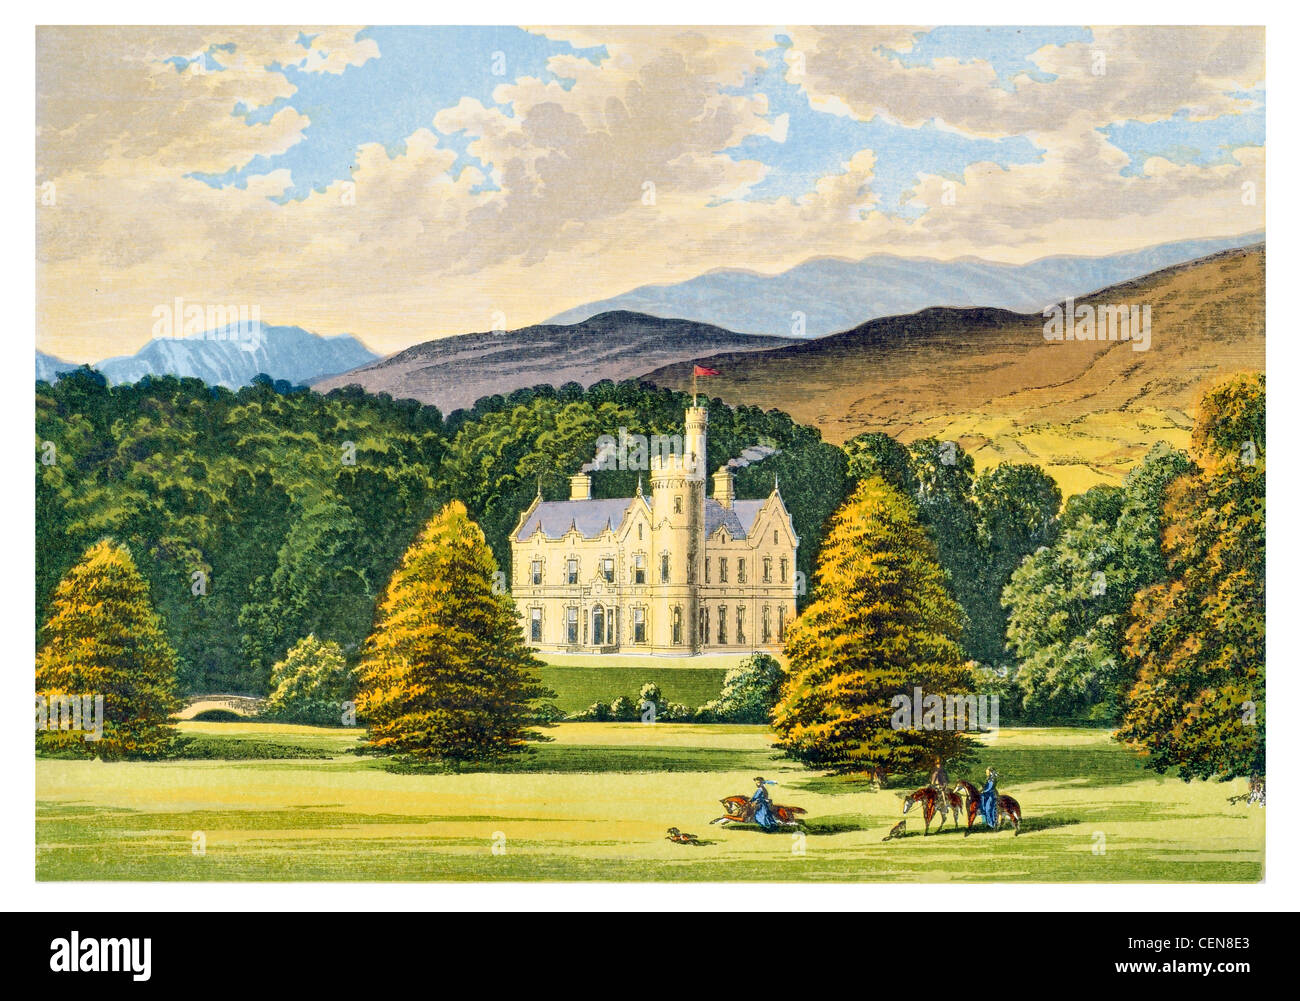 Ardtully Airntully Britain England UK Parkland Park Mansion Manor House Stately Home Hall Palace Estate Castle Landscaped